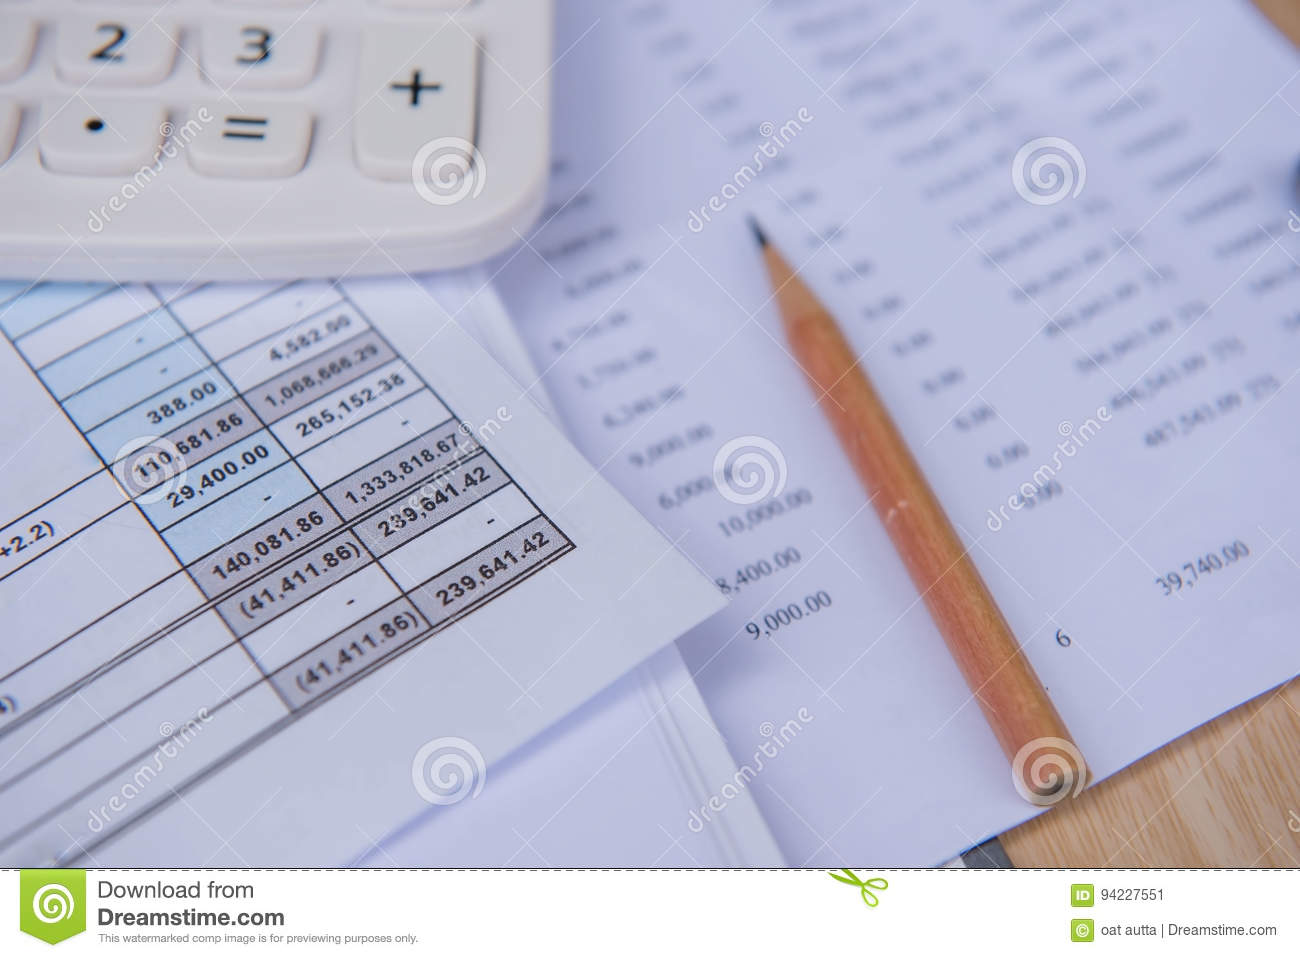 closeup accounts number on a printed paper calculator and pencil